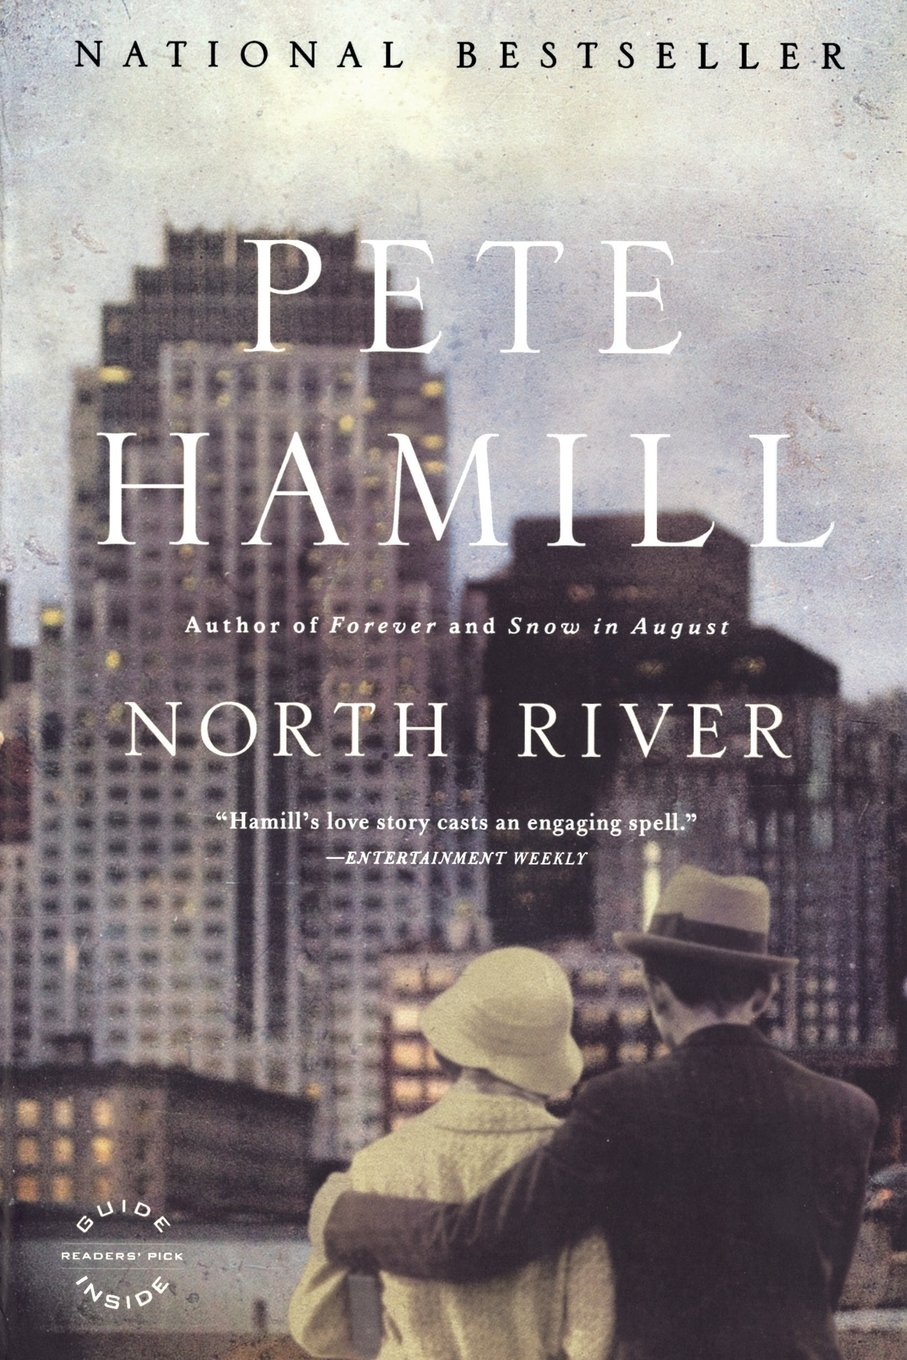 Image result for north river book image